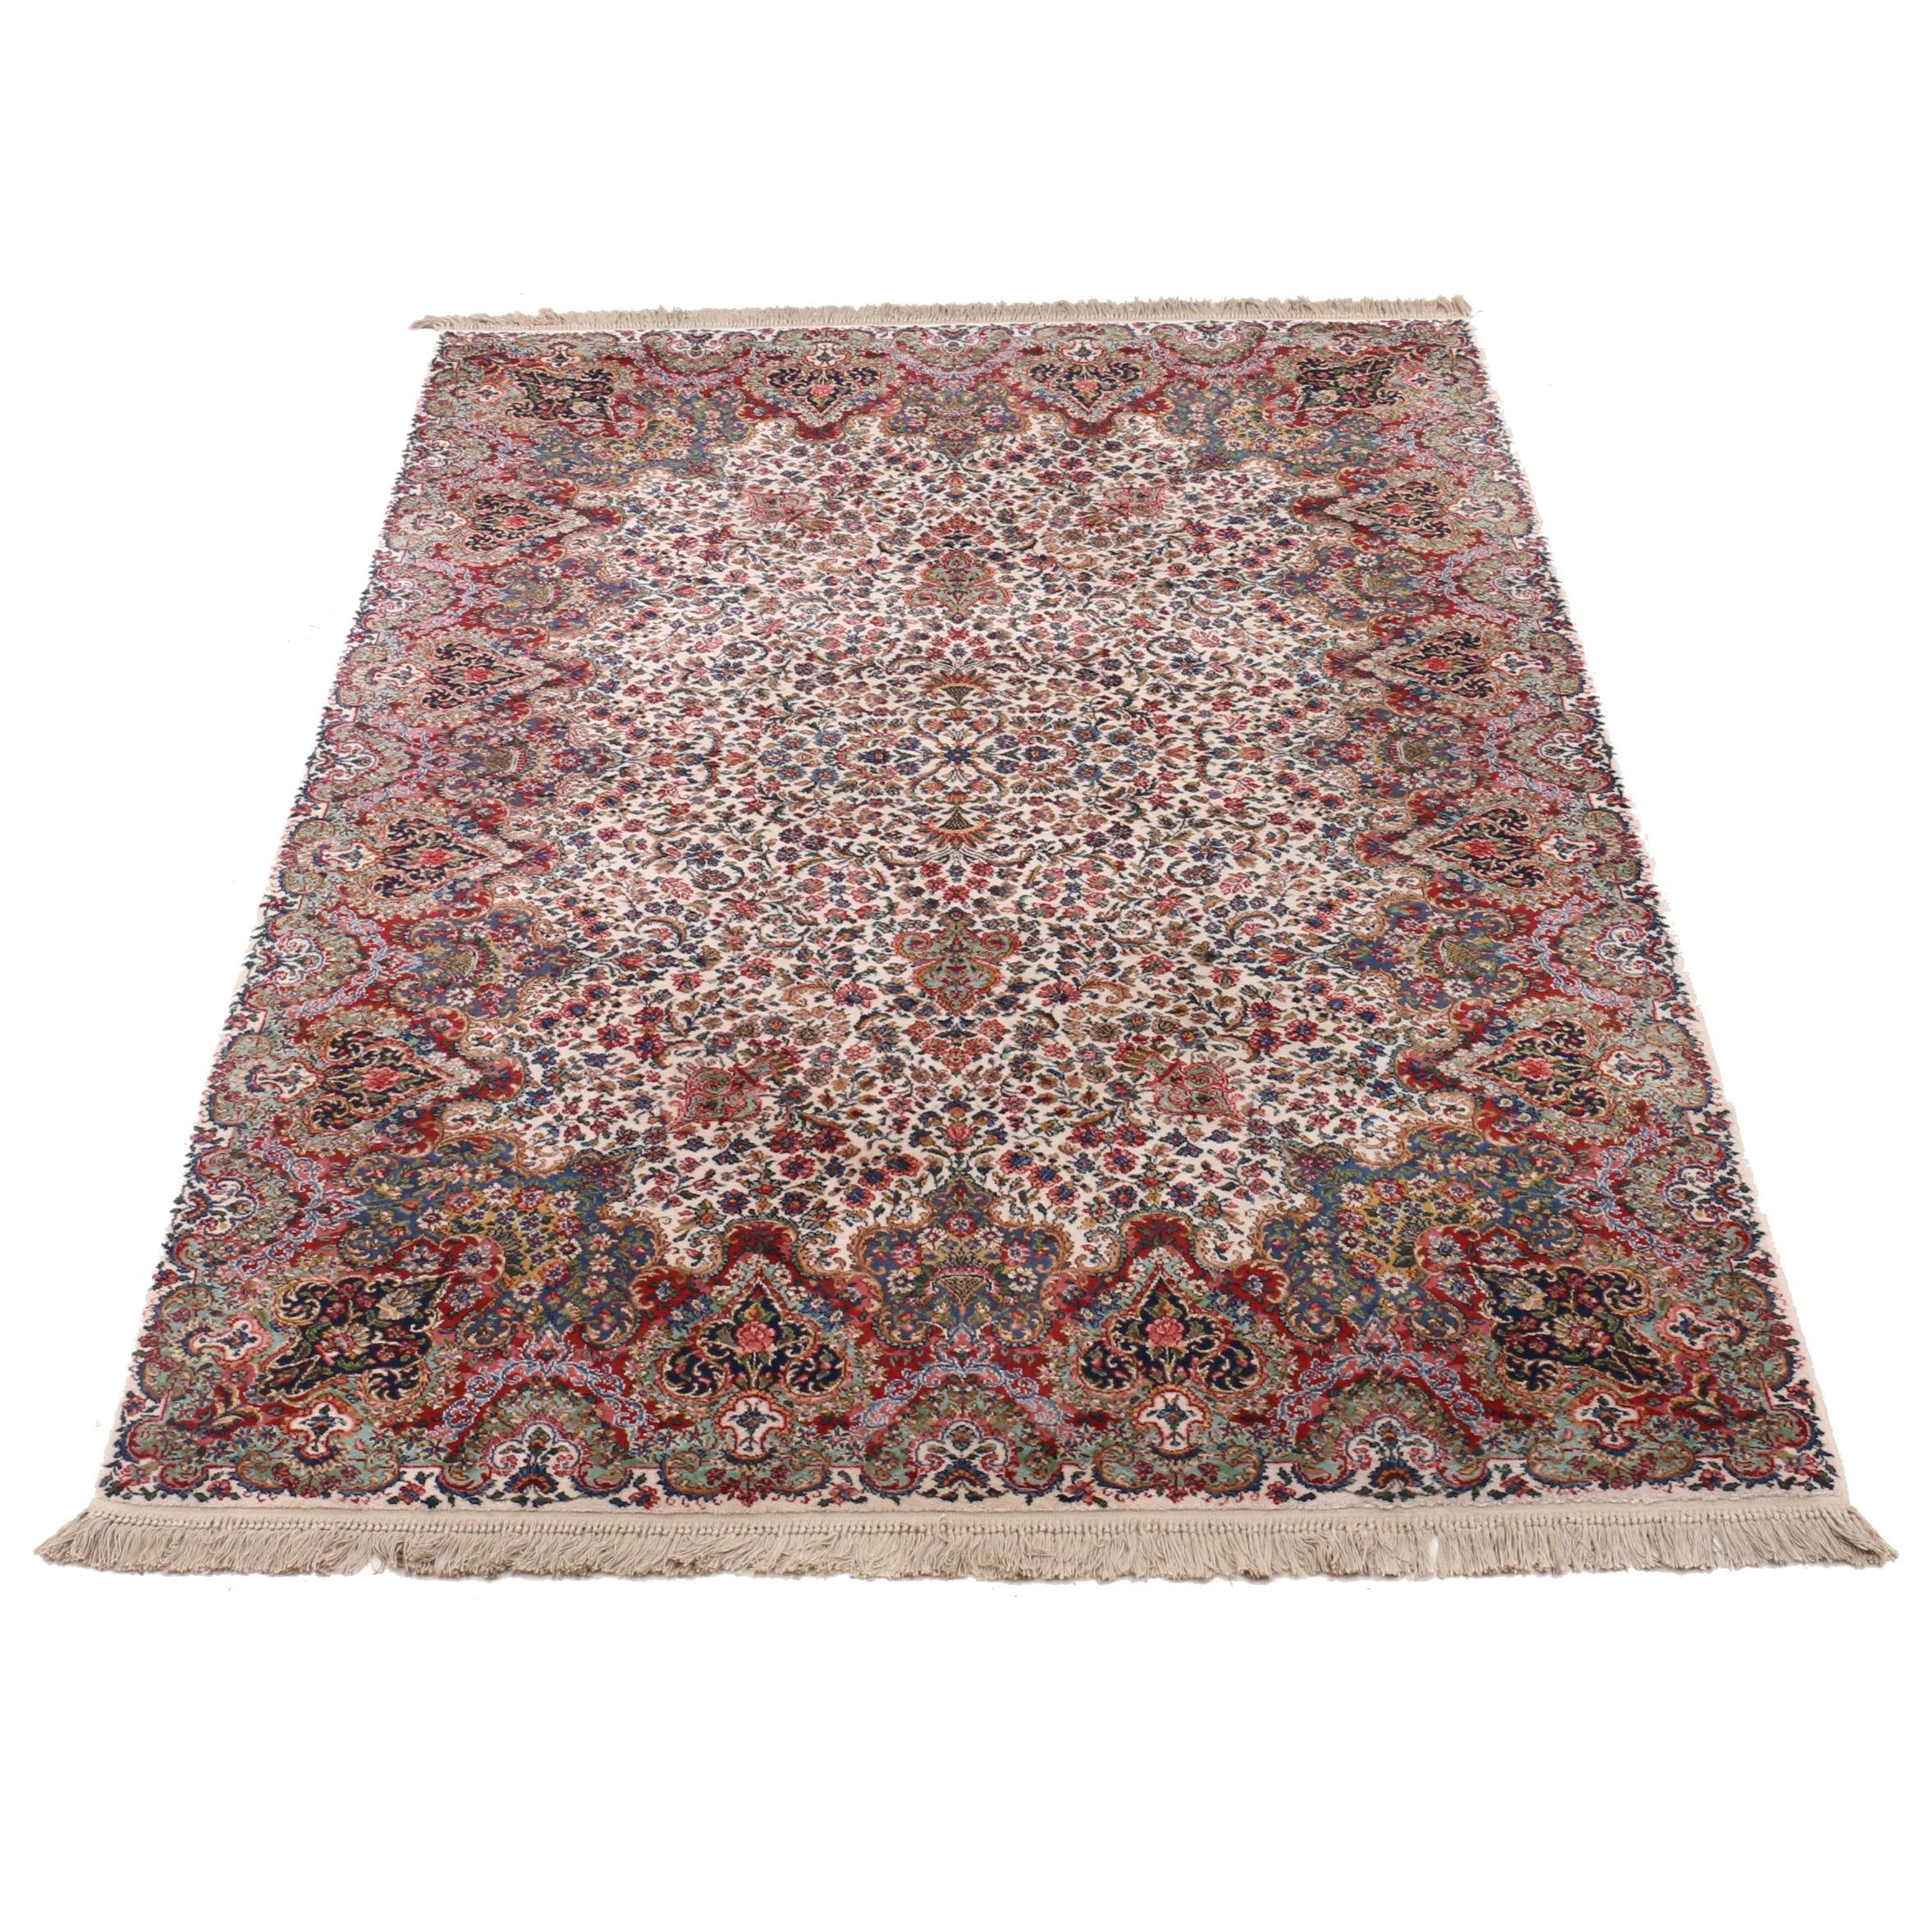 "Machine Made Karastan ""Floral Kirman"" Wool Area Rug"